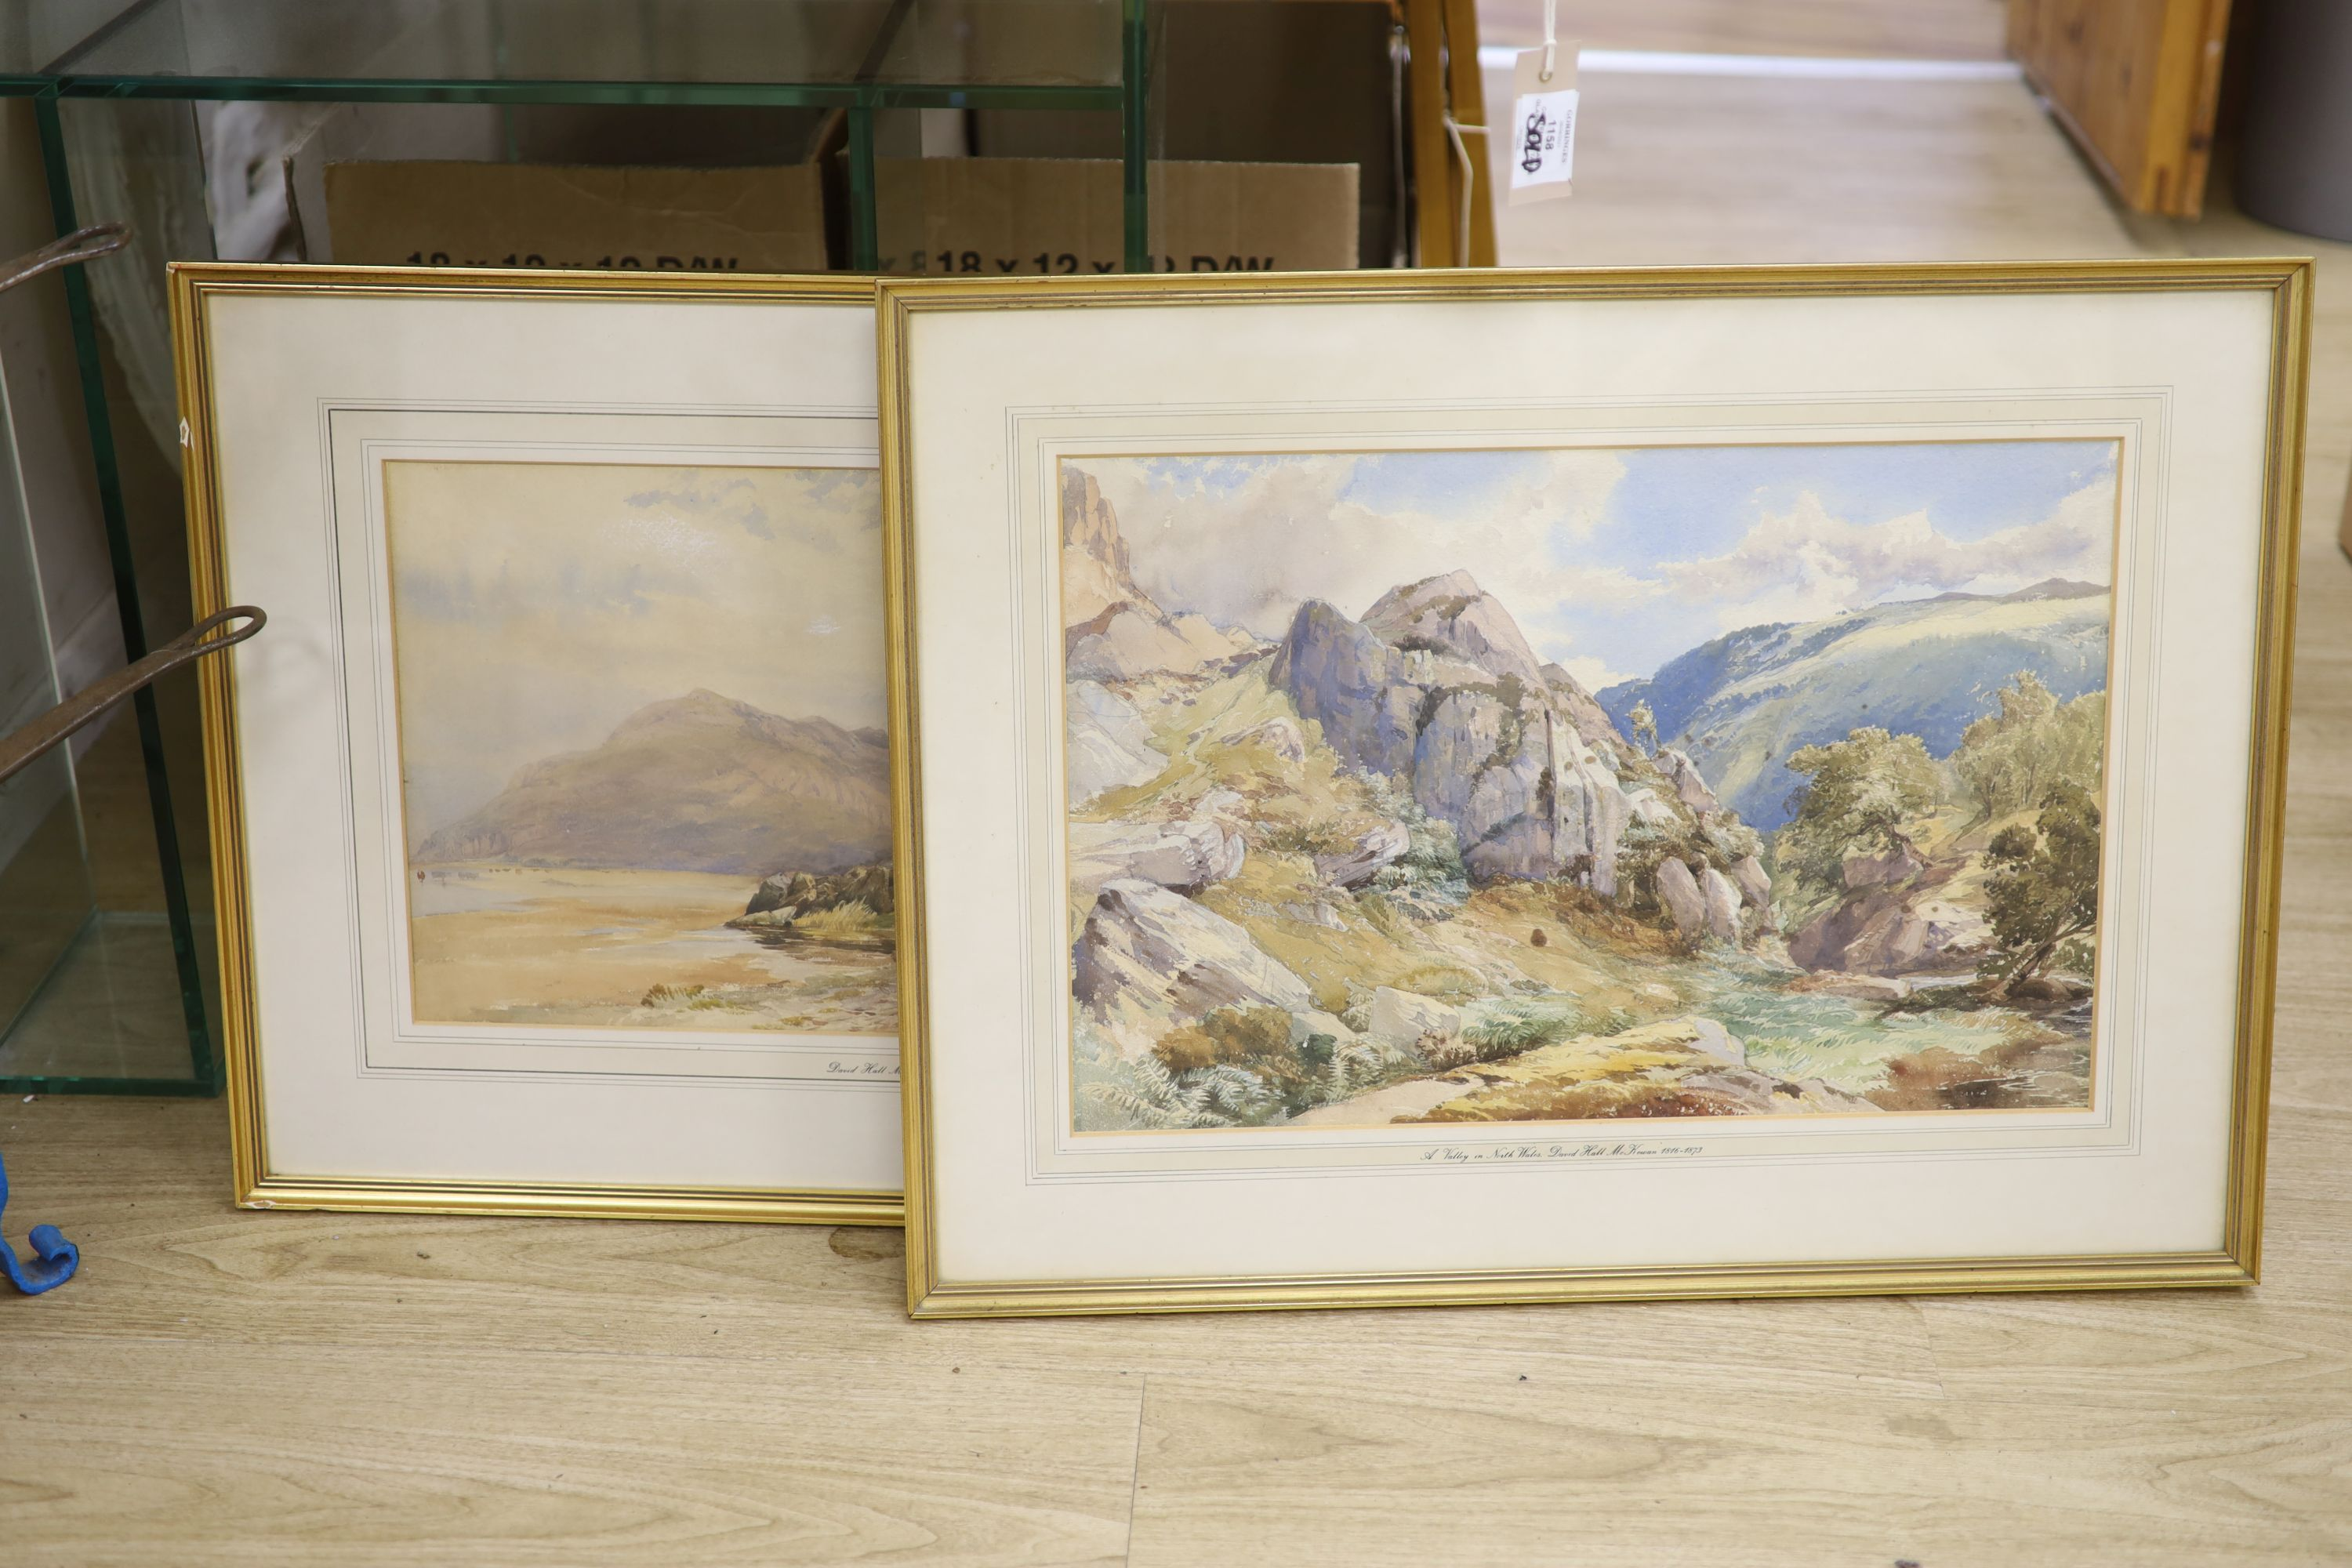 David Hall McKewan (1816-1873), pair of watercolours, A Valley in North Wales and a companion